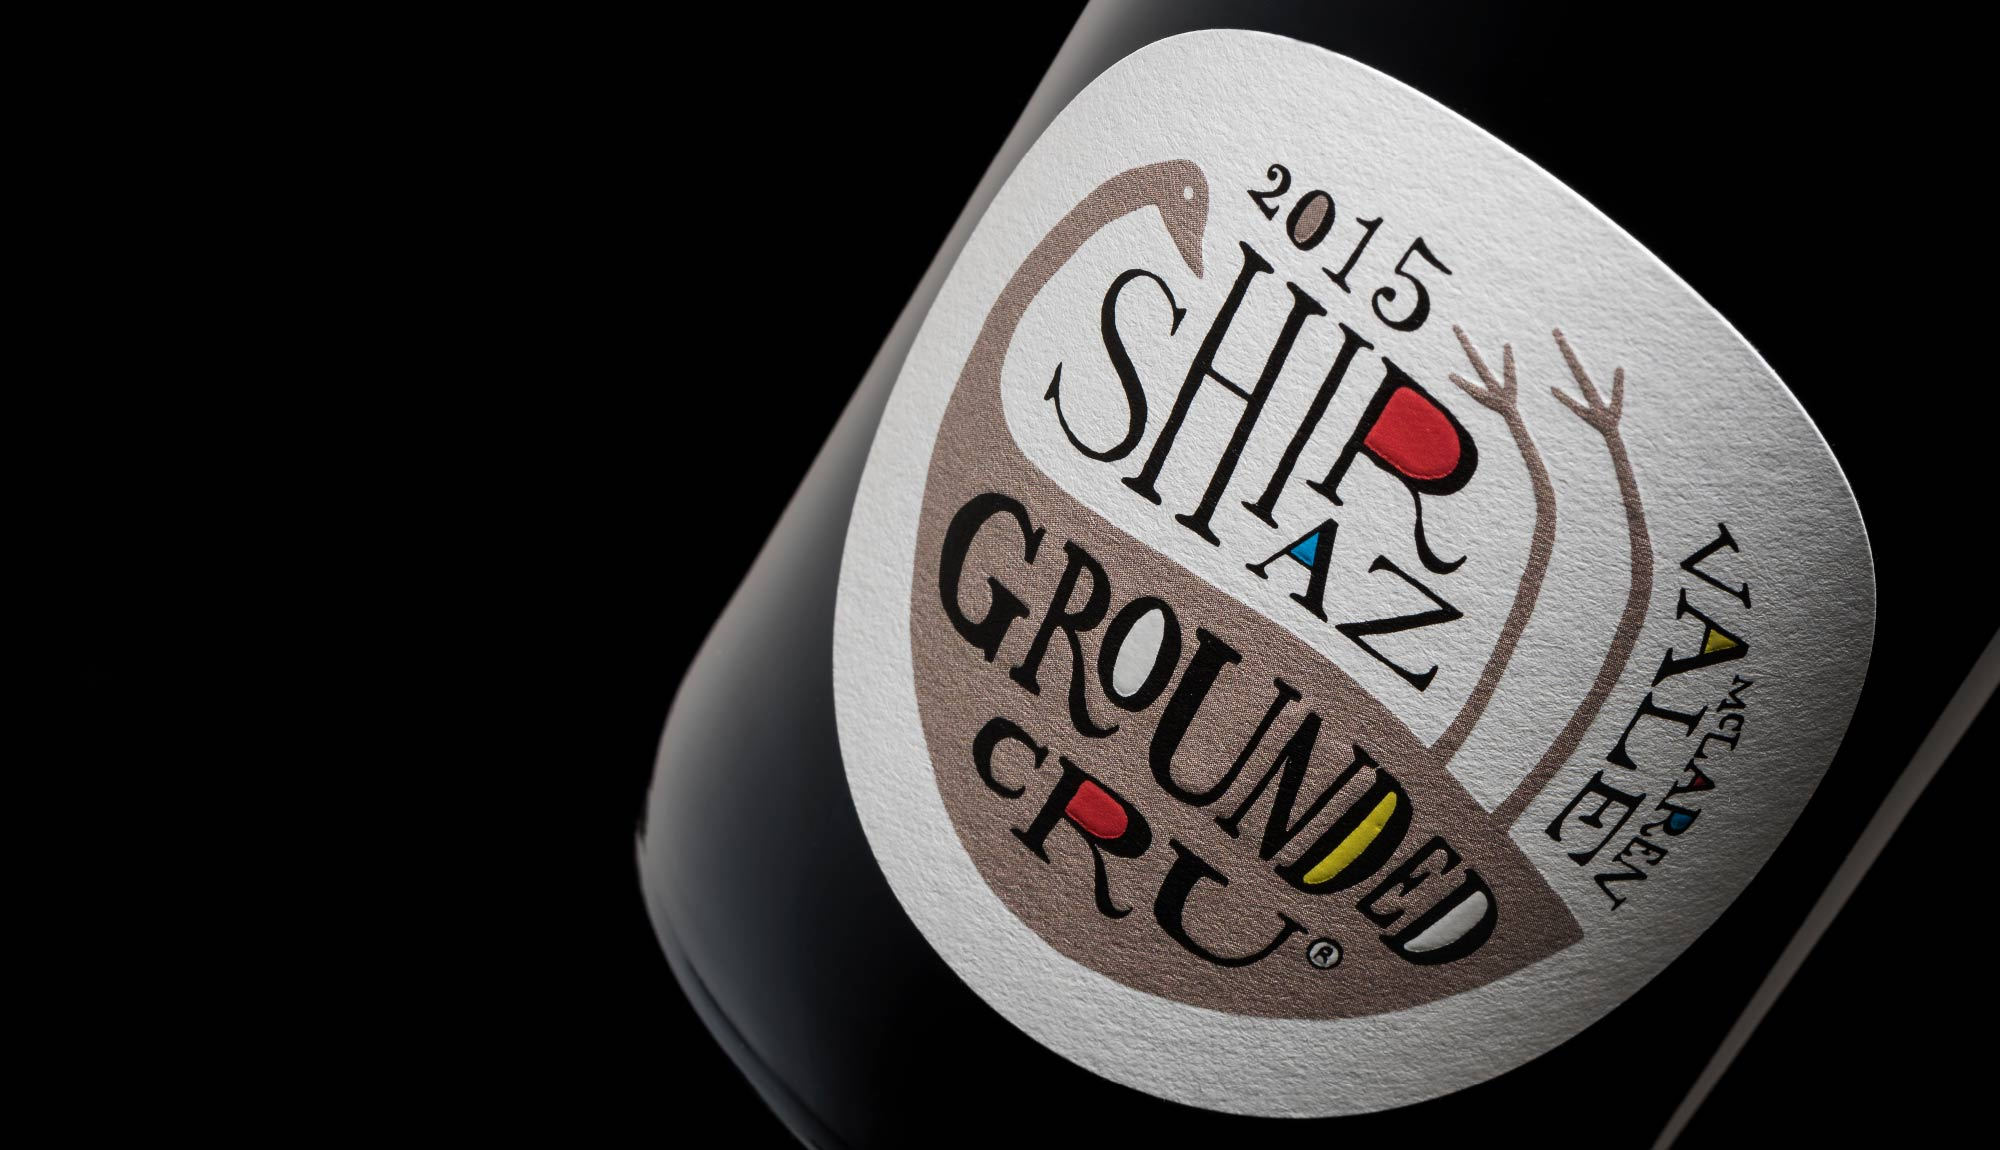 Grounded Cru wine label